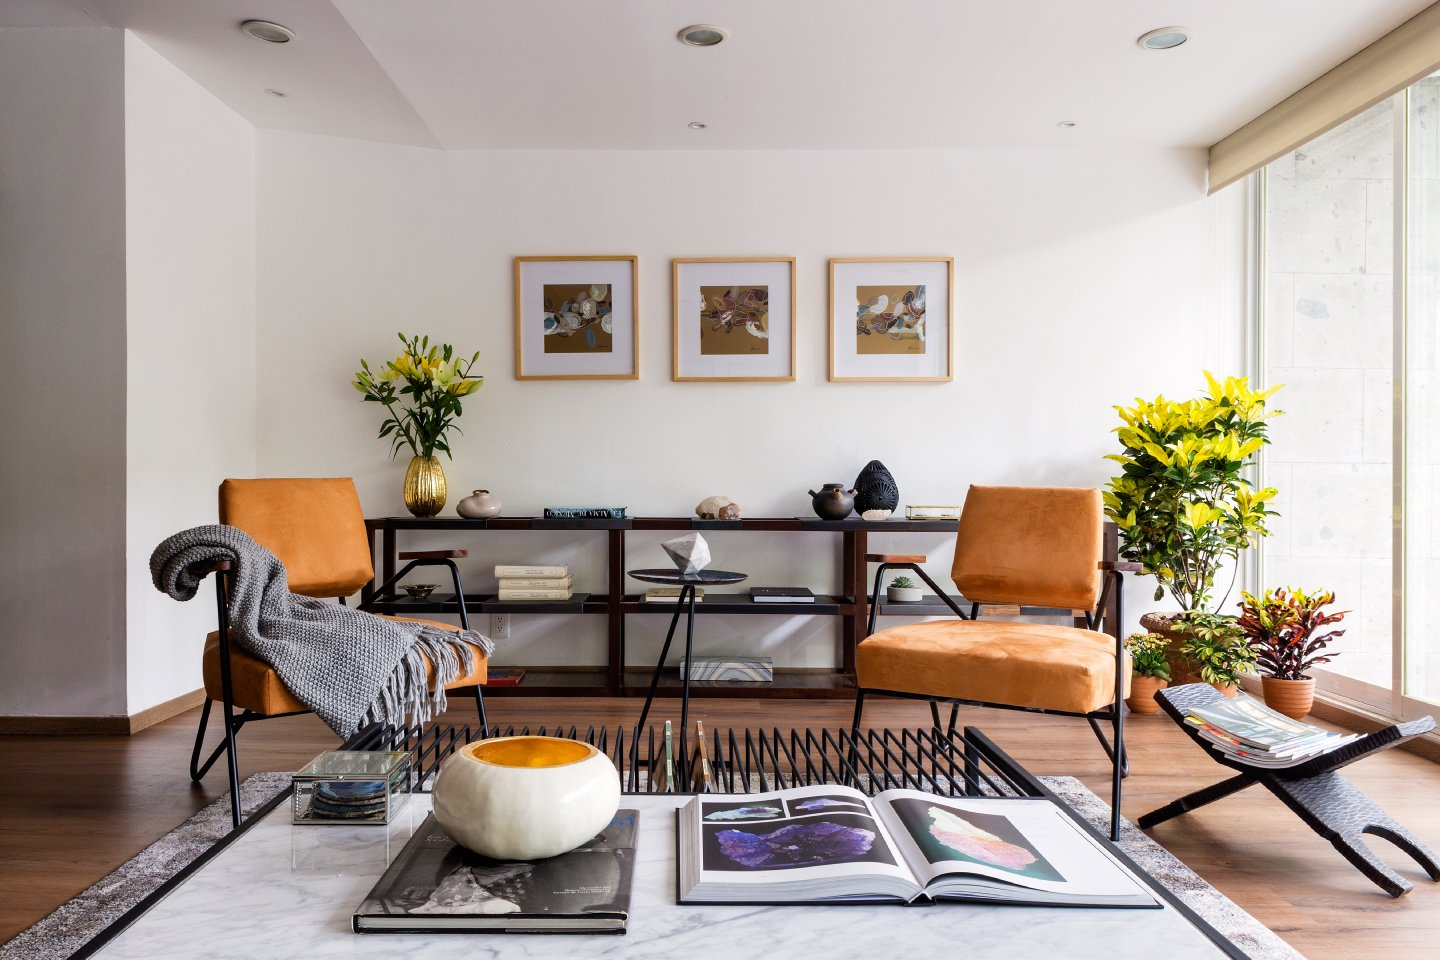 7 Stylish Pads to Rent in Mexico City